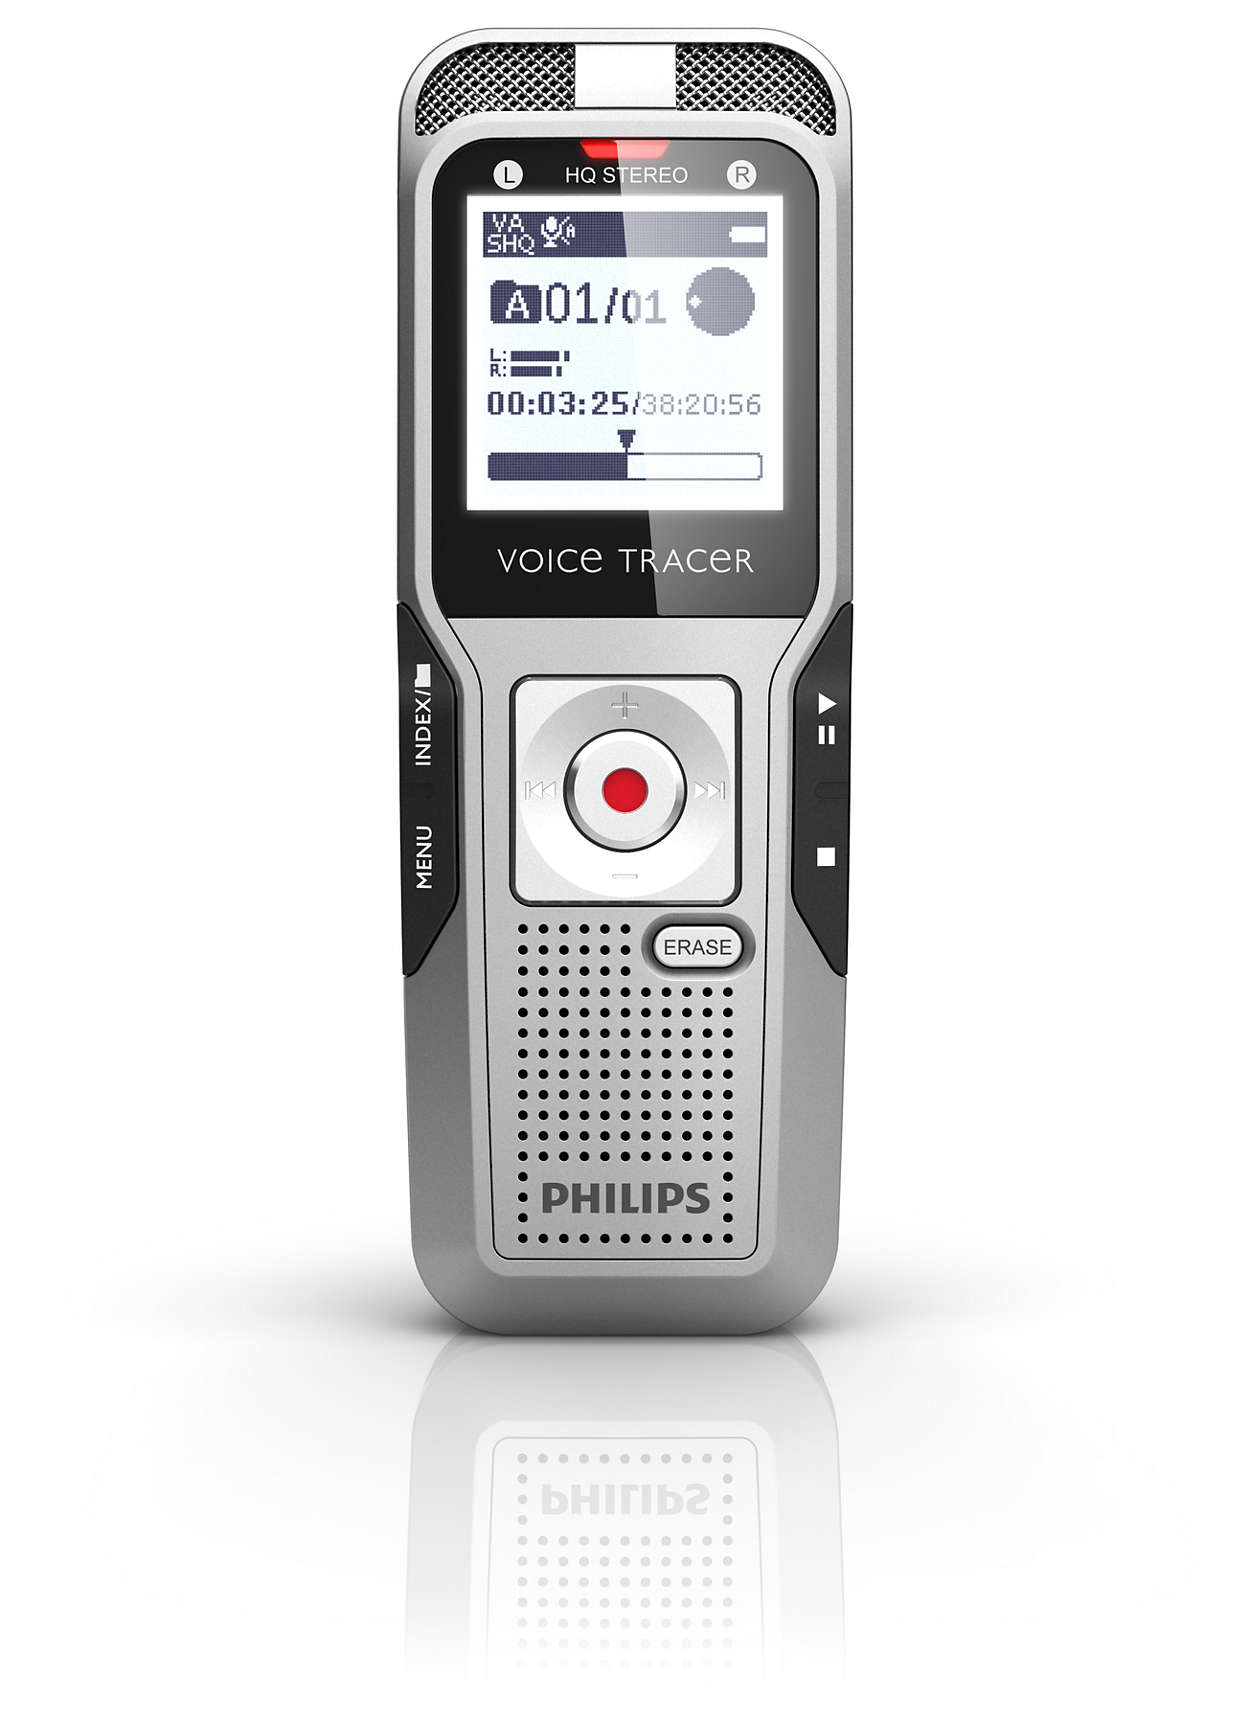 Voice Tracer Digital Recorder Dvt3500 00 Philips